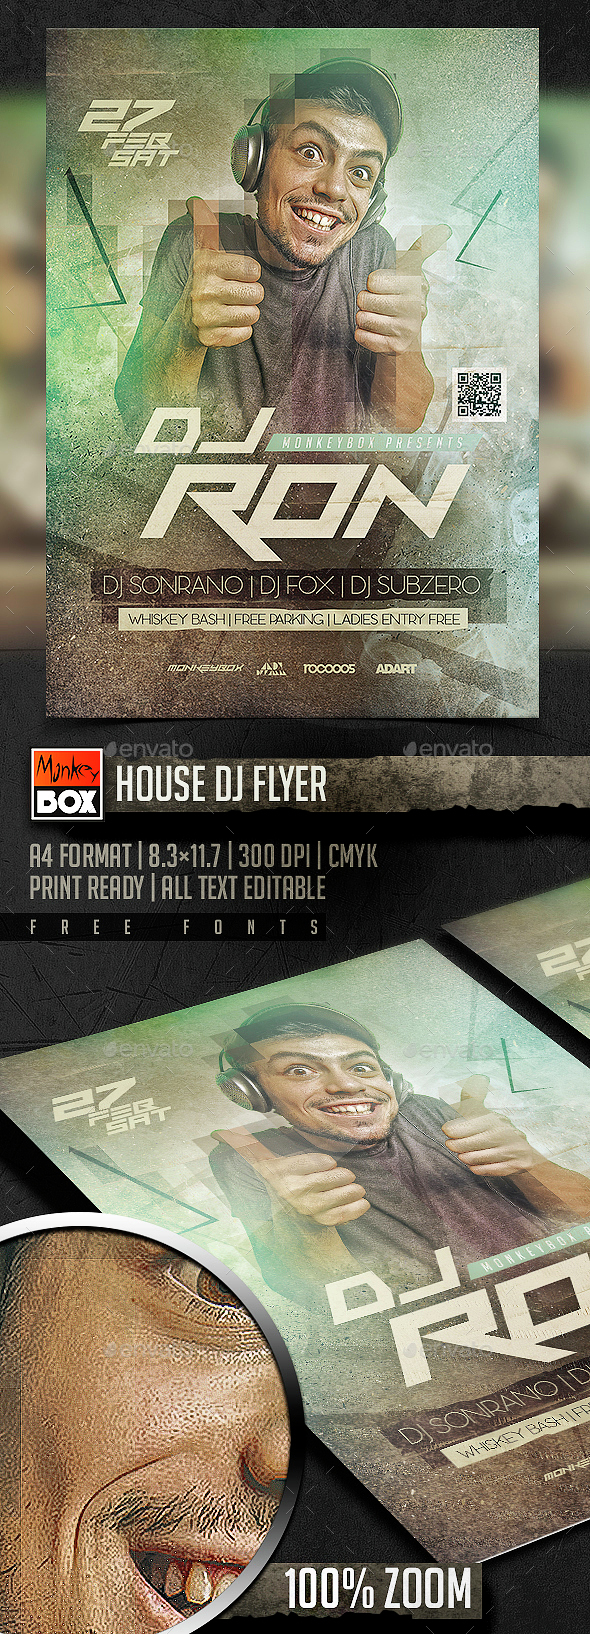 House Dj Flyer - Clubs & Parties Events